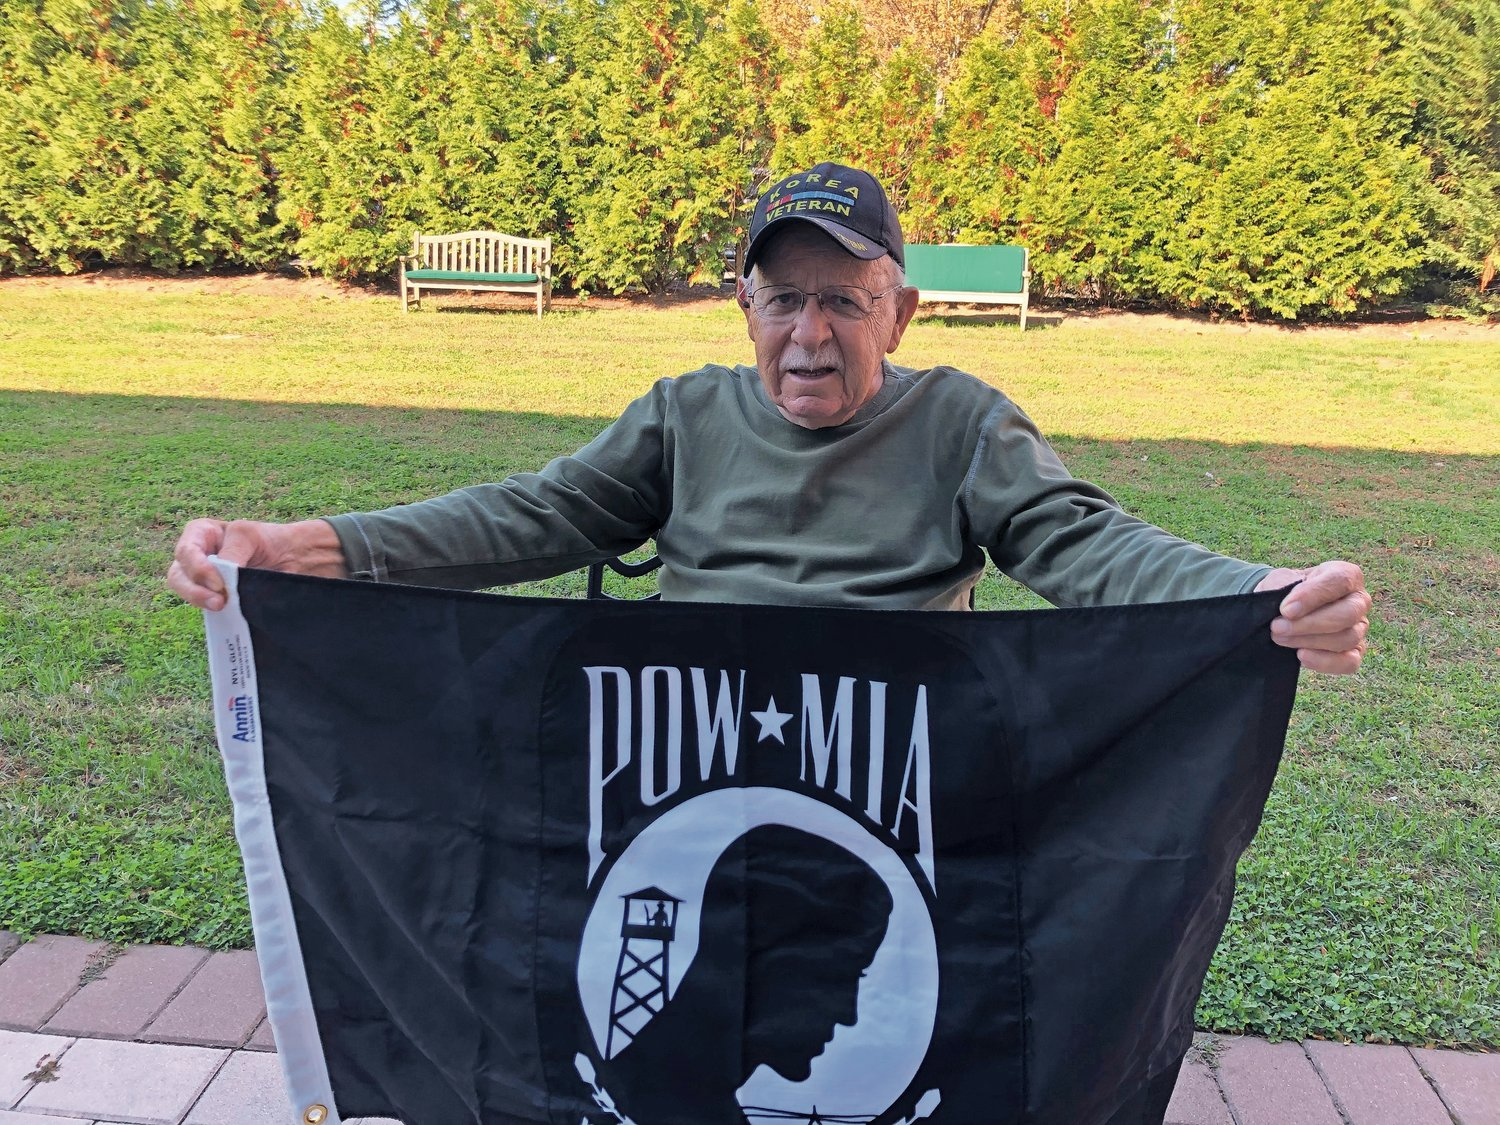 When Irving Liebowitz realized that the Hebrew Home at Riverdale was missing a POW/MIA flag, he called on his friends at the Jewish War Veterans Post 652 in Merrick to help remedy that in time for Veterans Day.